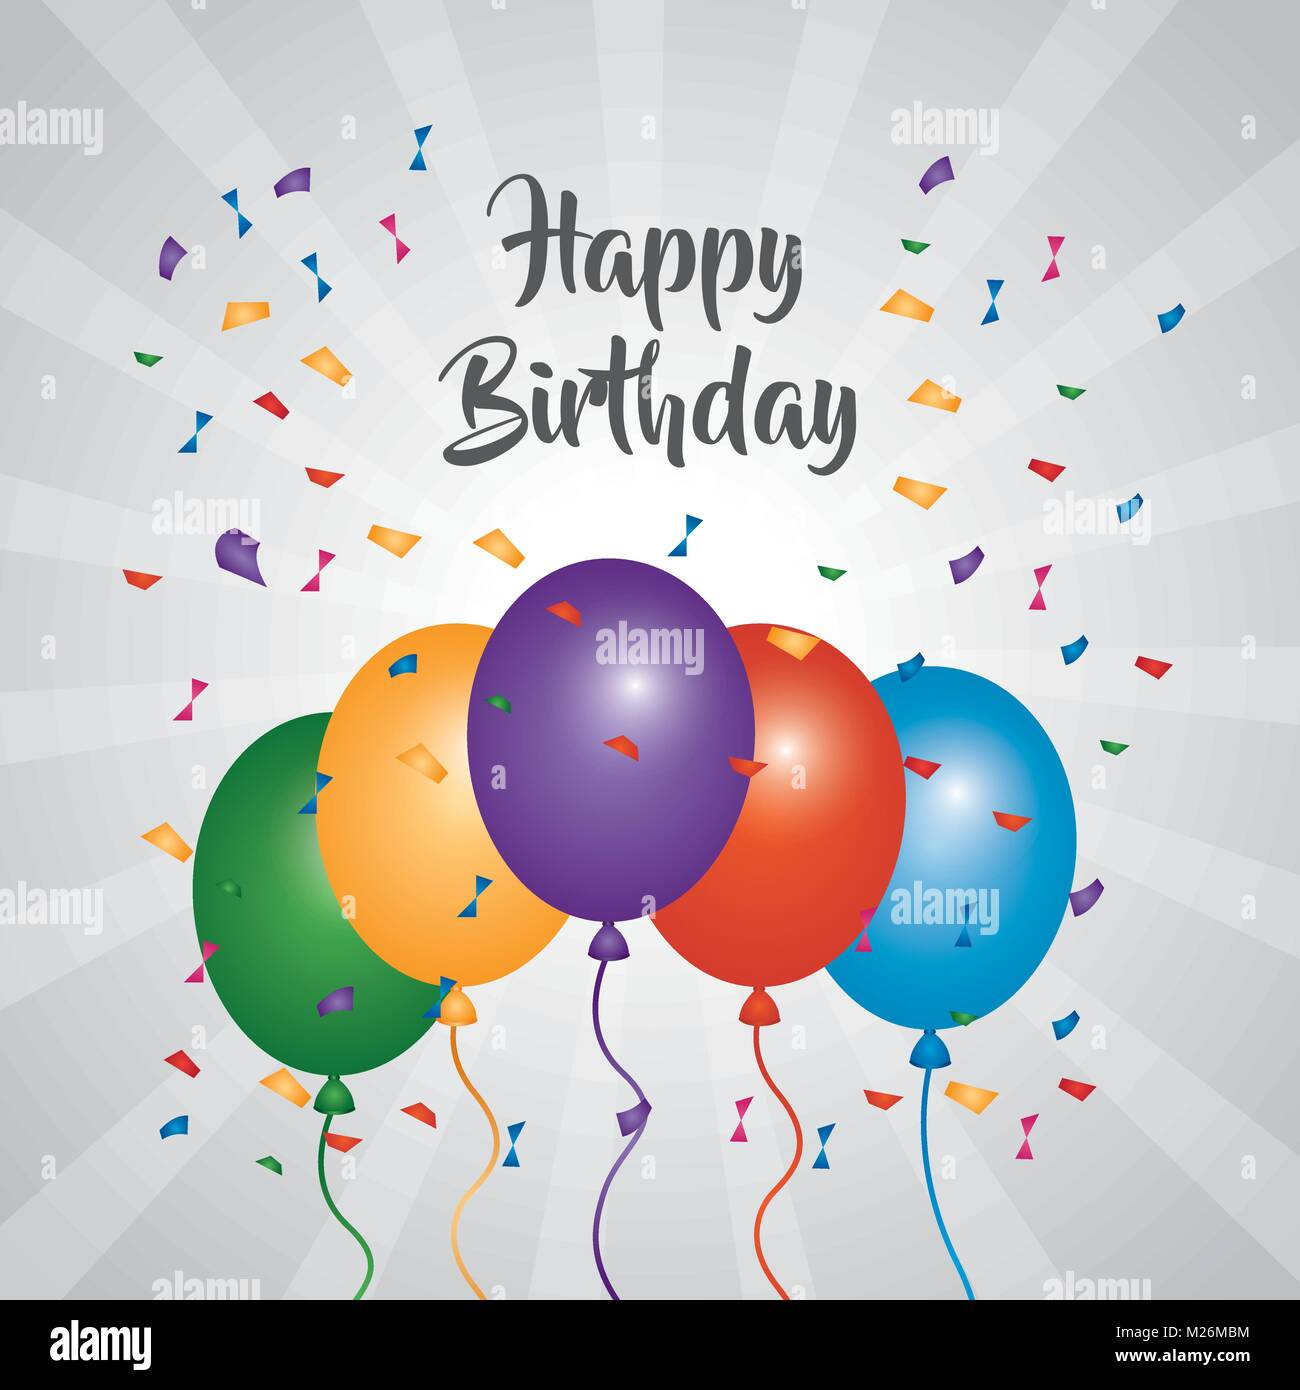 Happy Birthday Greeting Card Bright Color Balloons Confetti